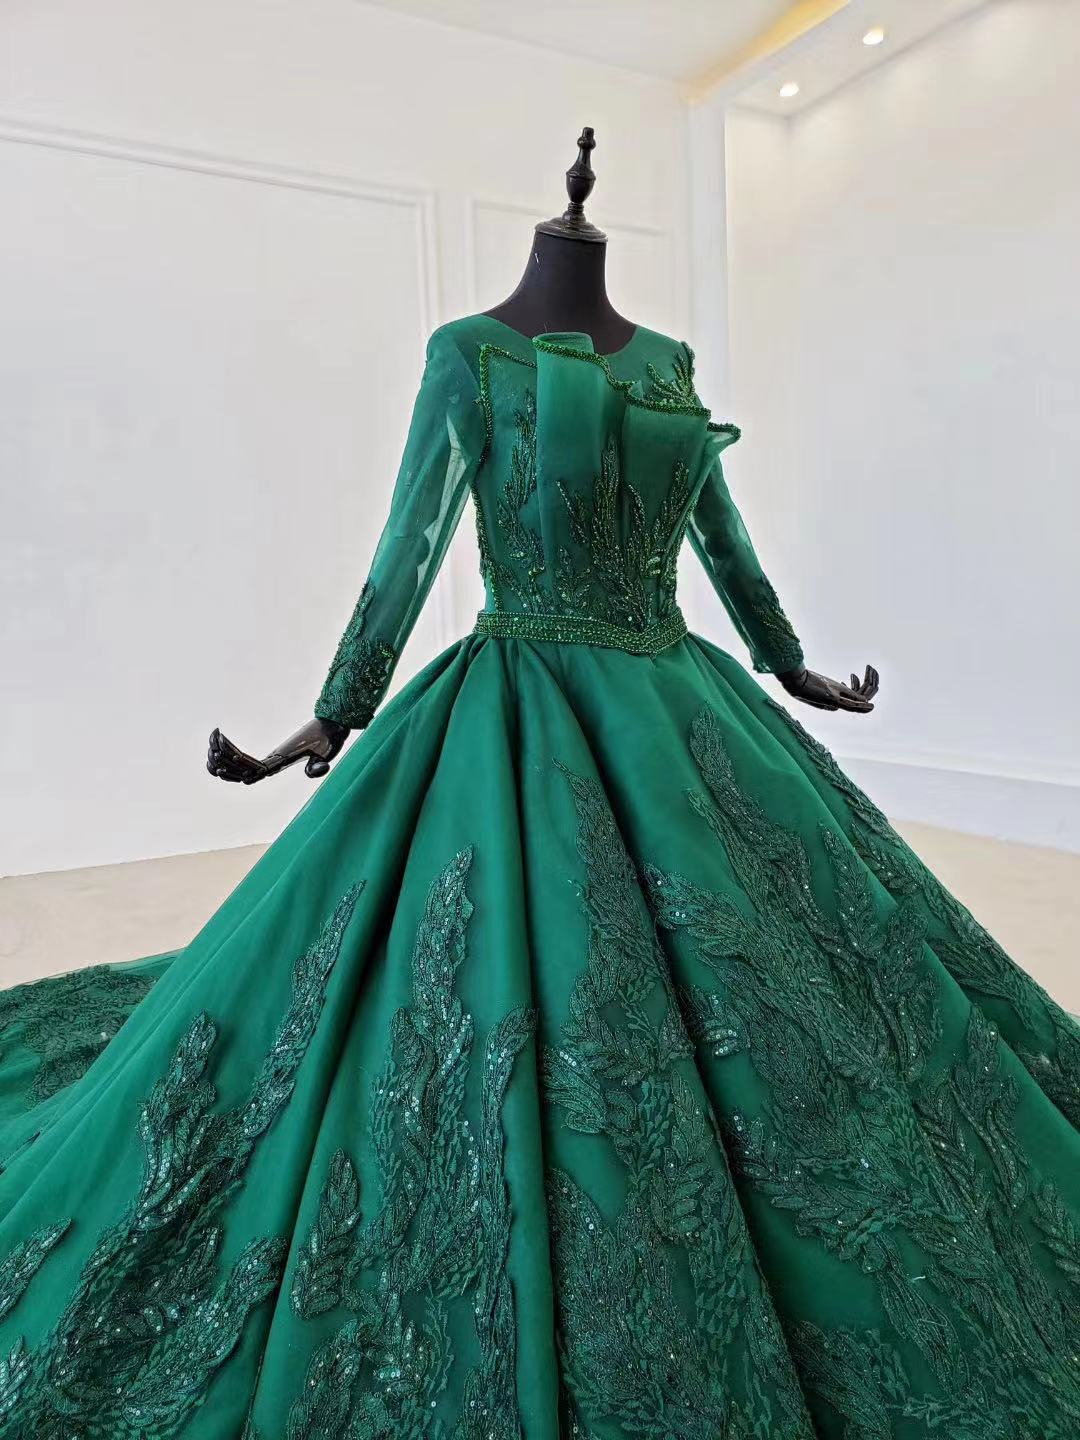 2020 New Green Satin Prom Dresses Prom Gown Scoop Ball Gown Sleeveless Evening Dress For Graduation Long Train Arabic Dresses - 4